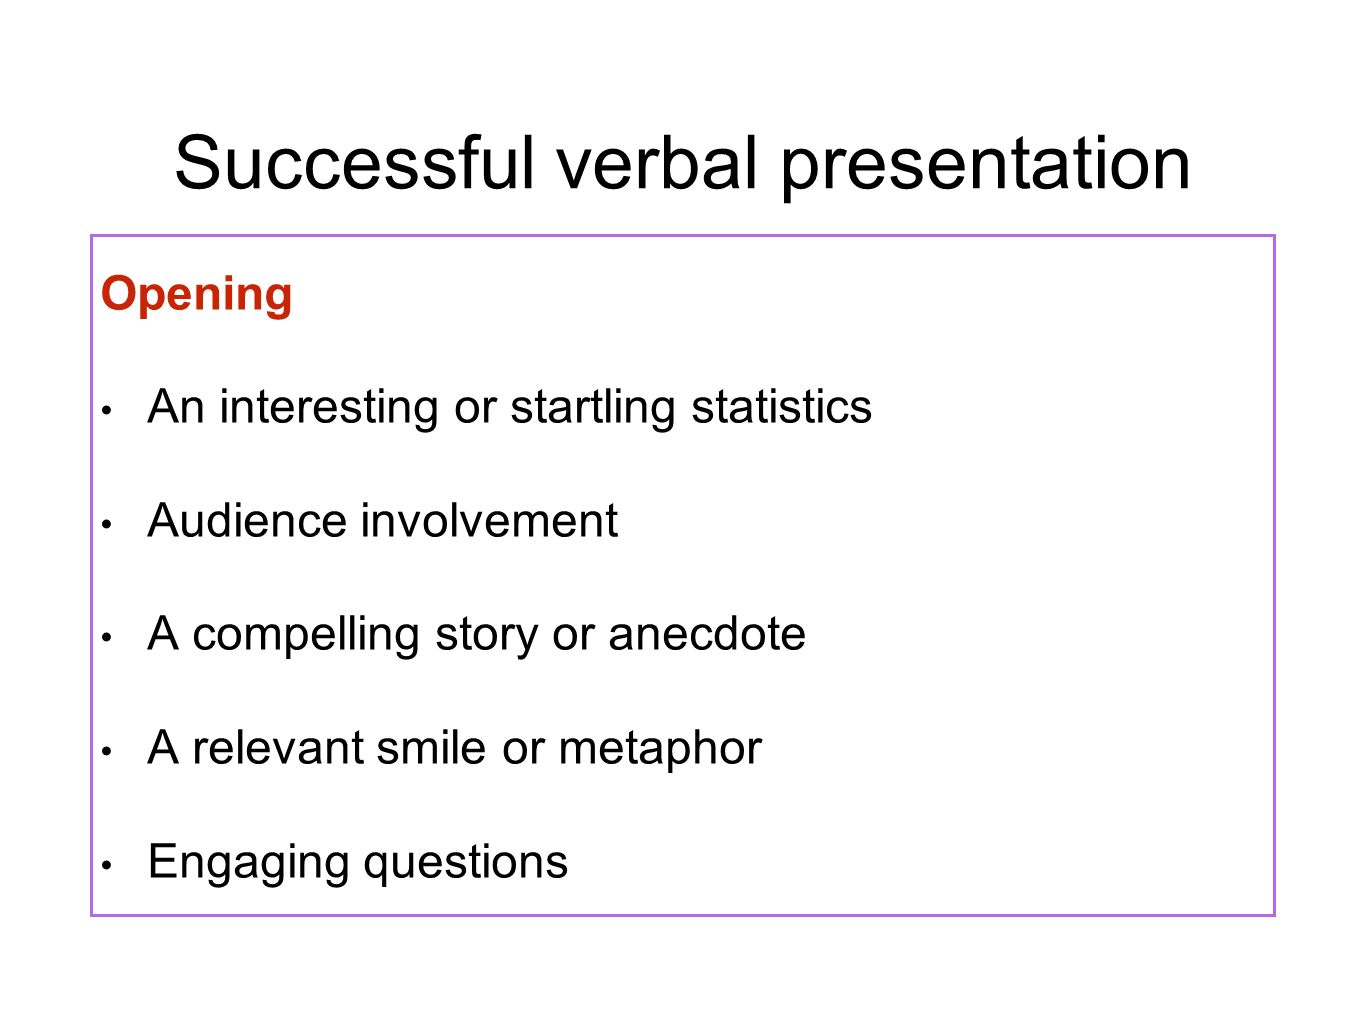 how to make a verbal presentation interesting